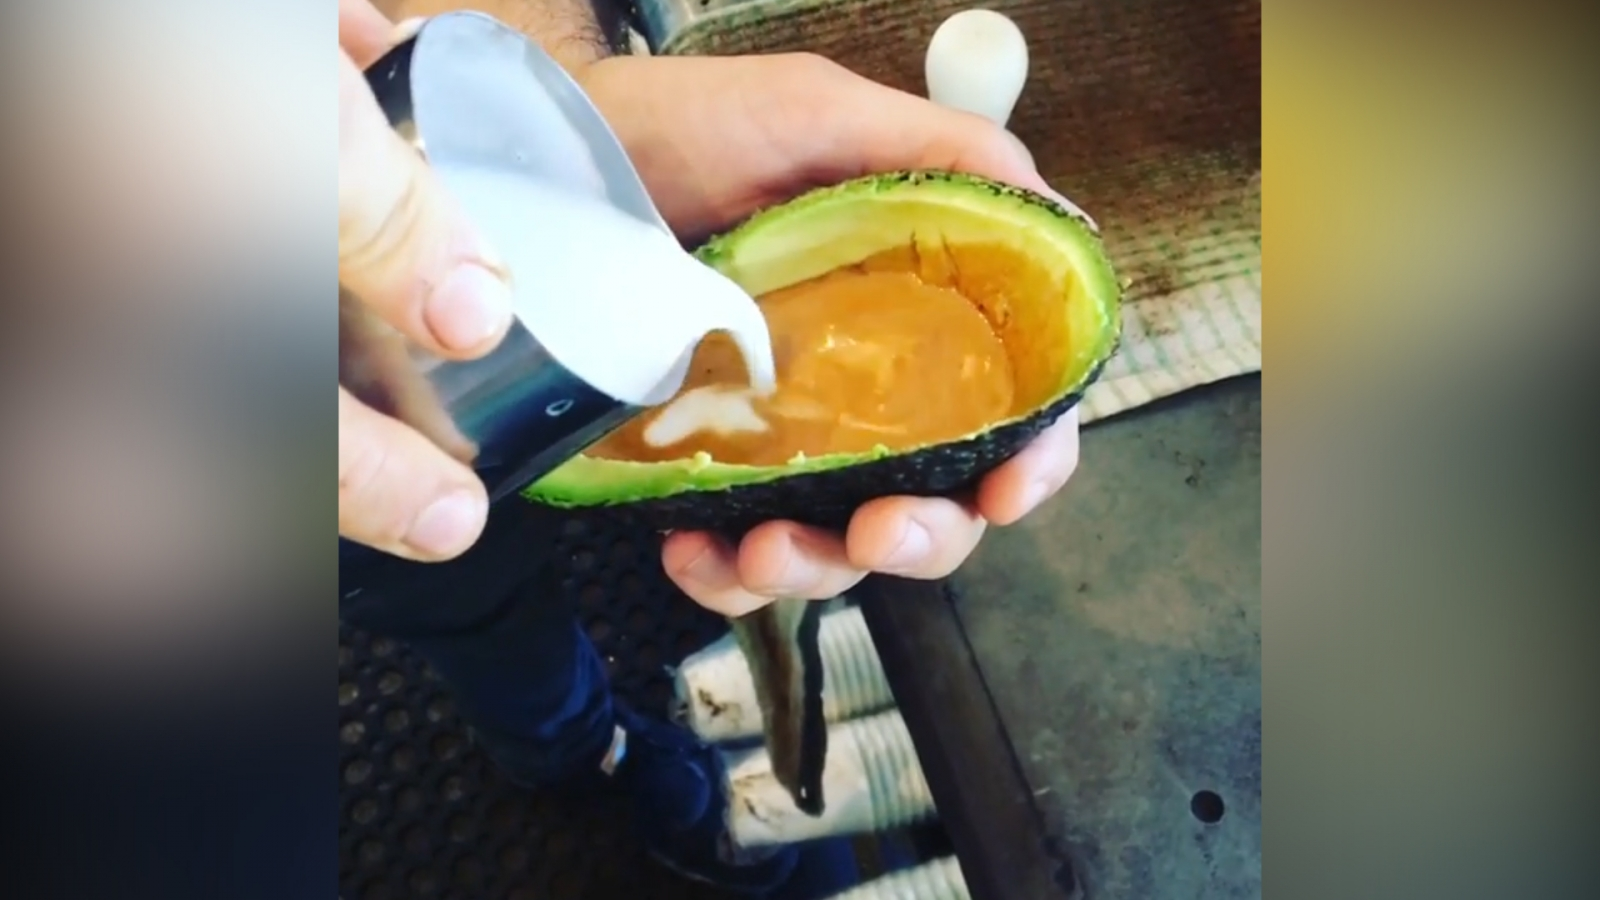 Avolattes take internet by storm in newest hipster craze